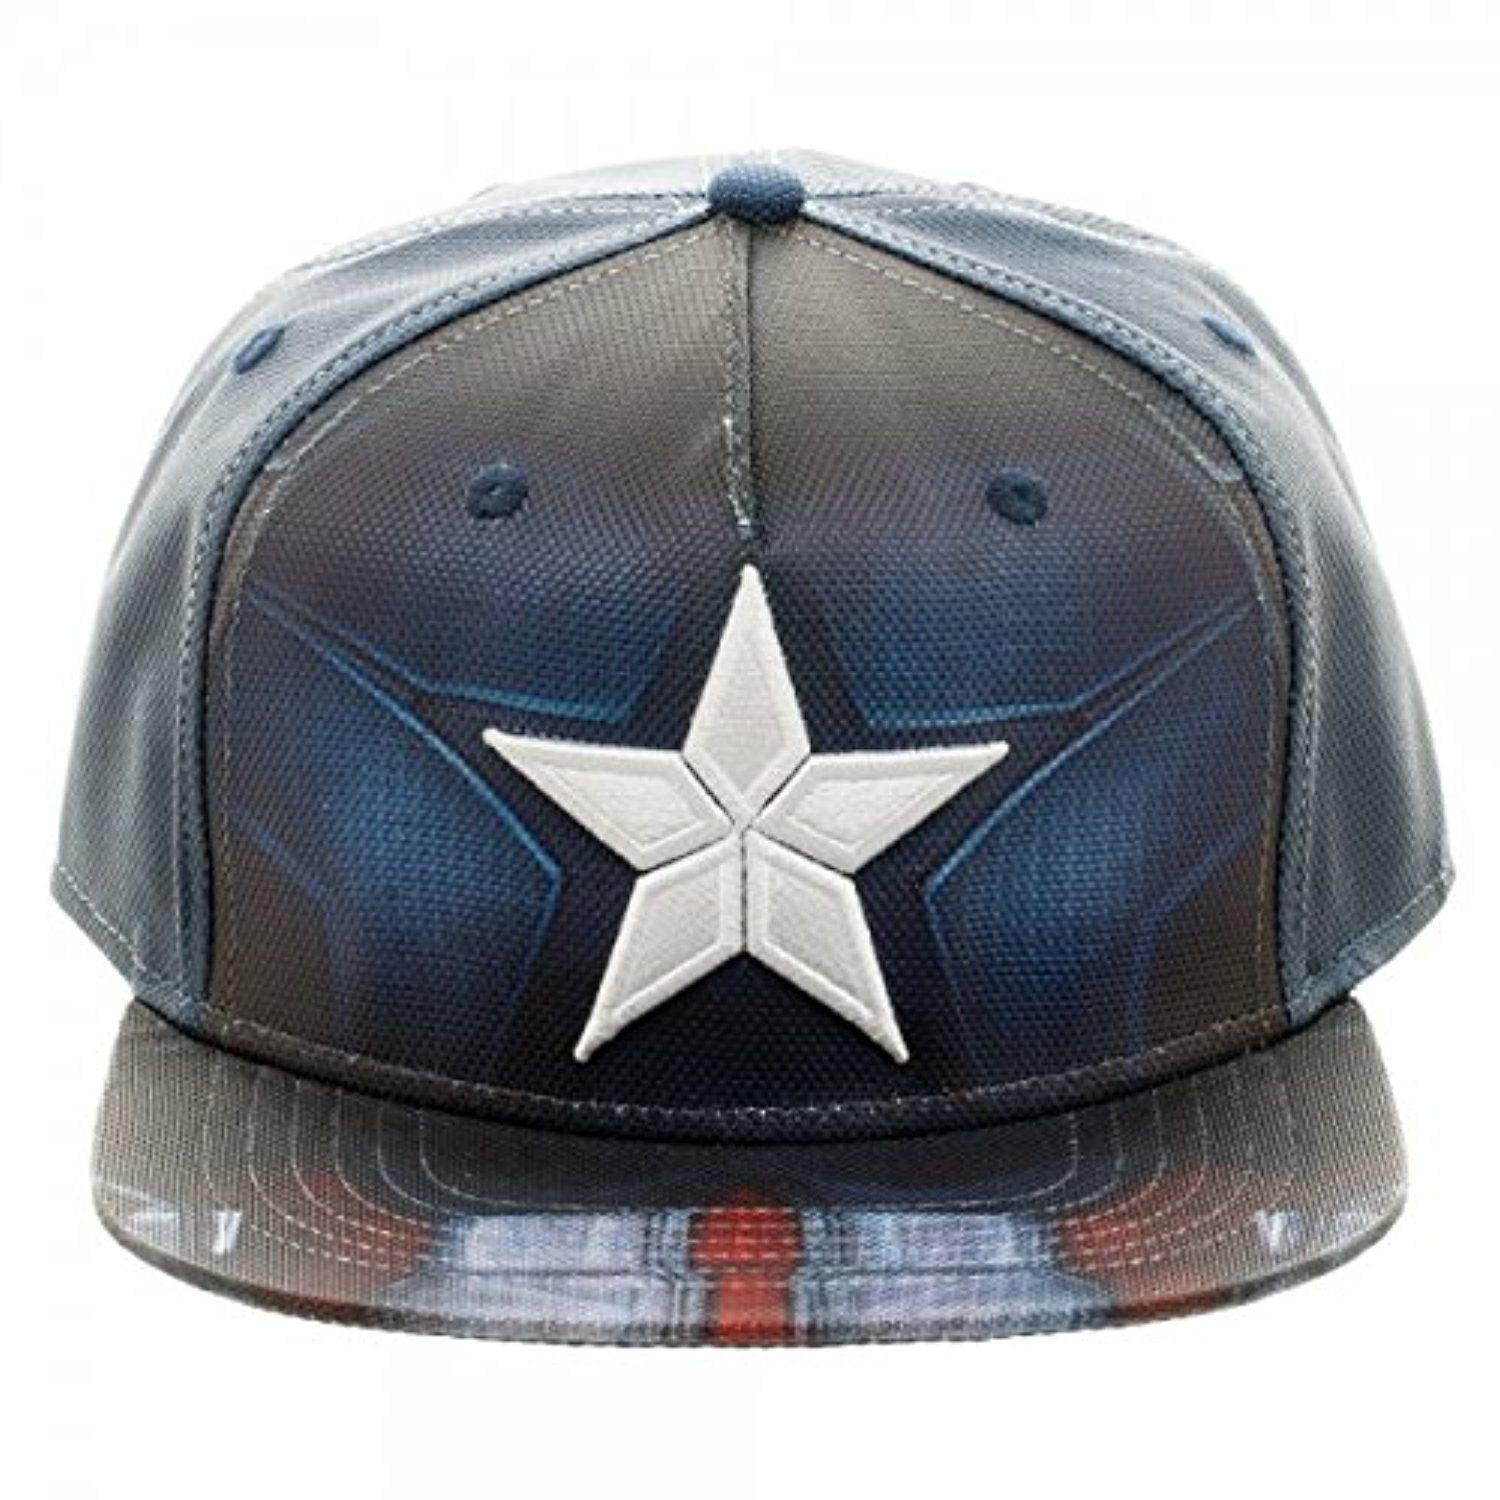 Bioworld Marvel Comics Civil War Snapback Hat Cap One Size- Captain America 51fa6a34012f